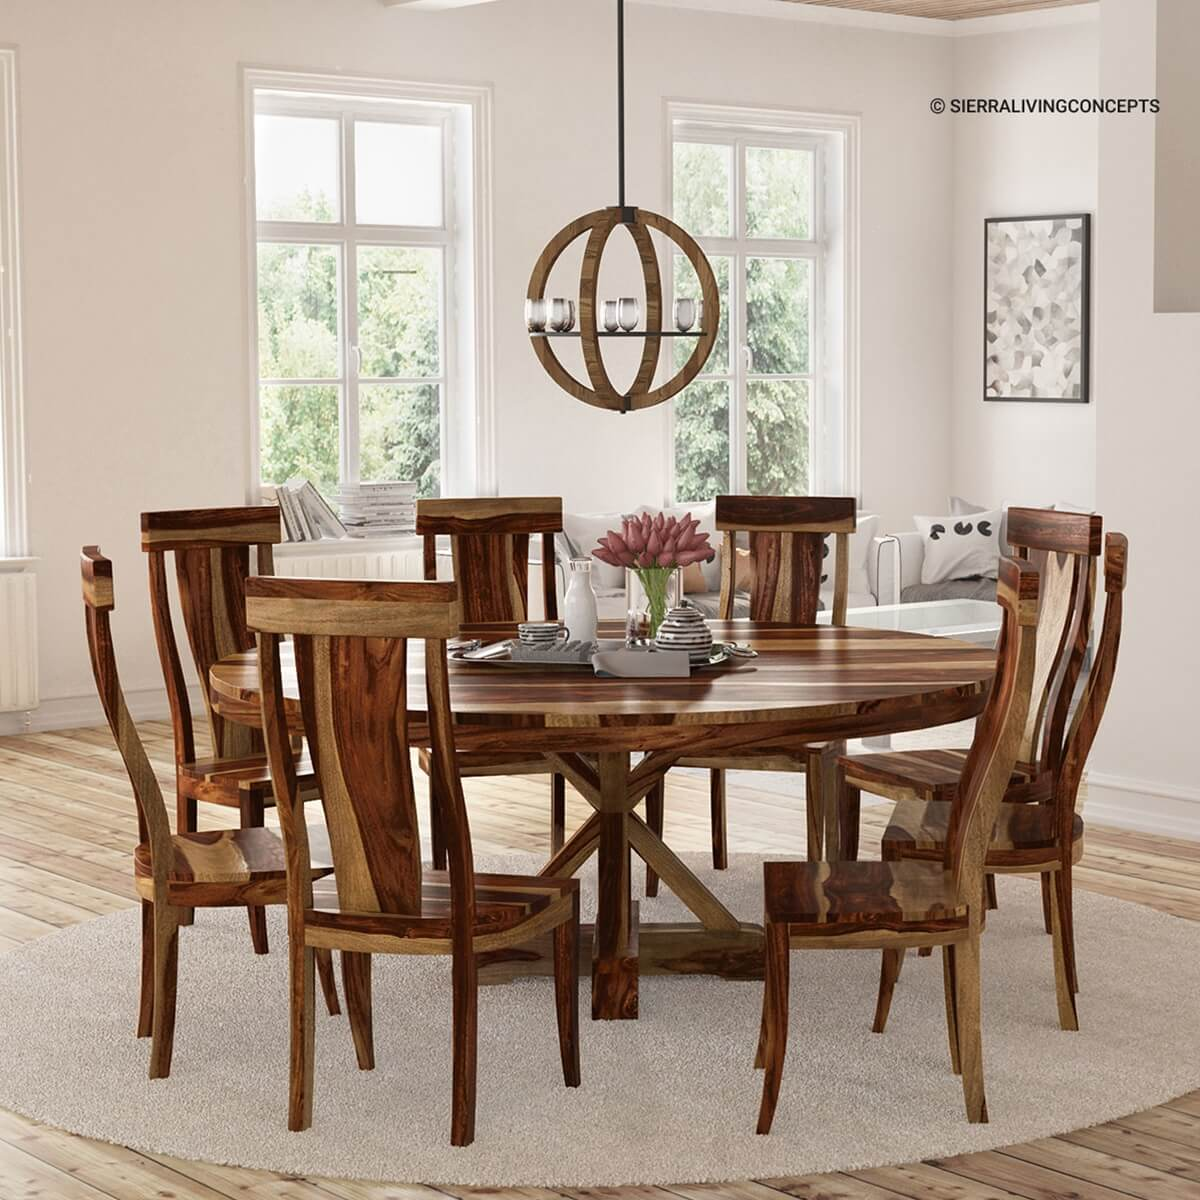 8 Chair Dining Set Bedford X Pedestal Rustic 72